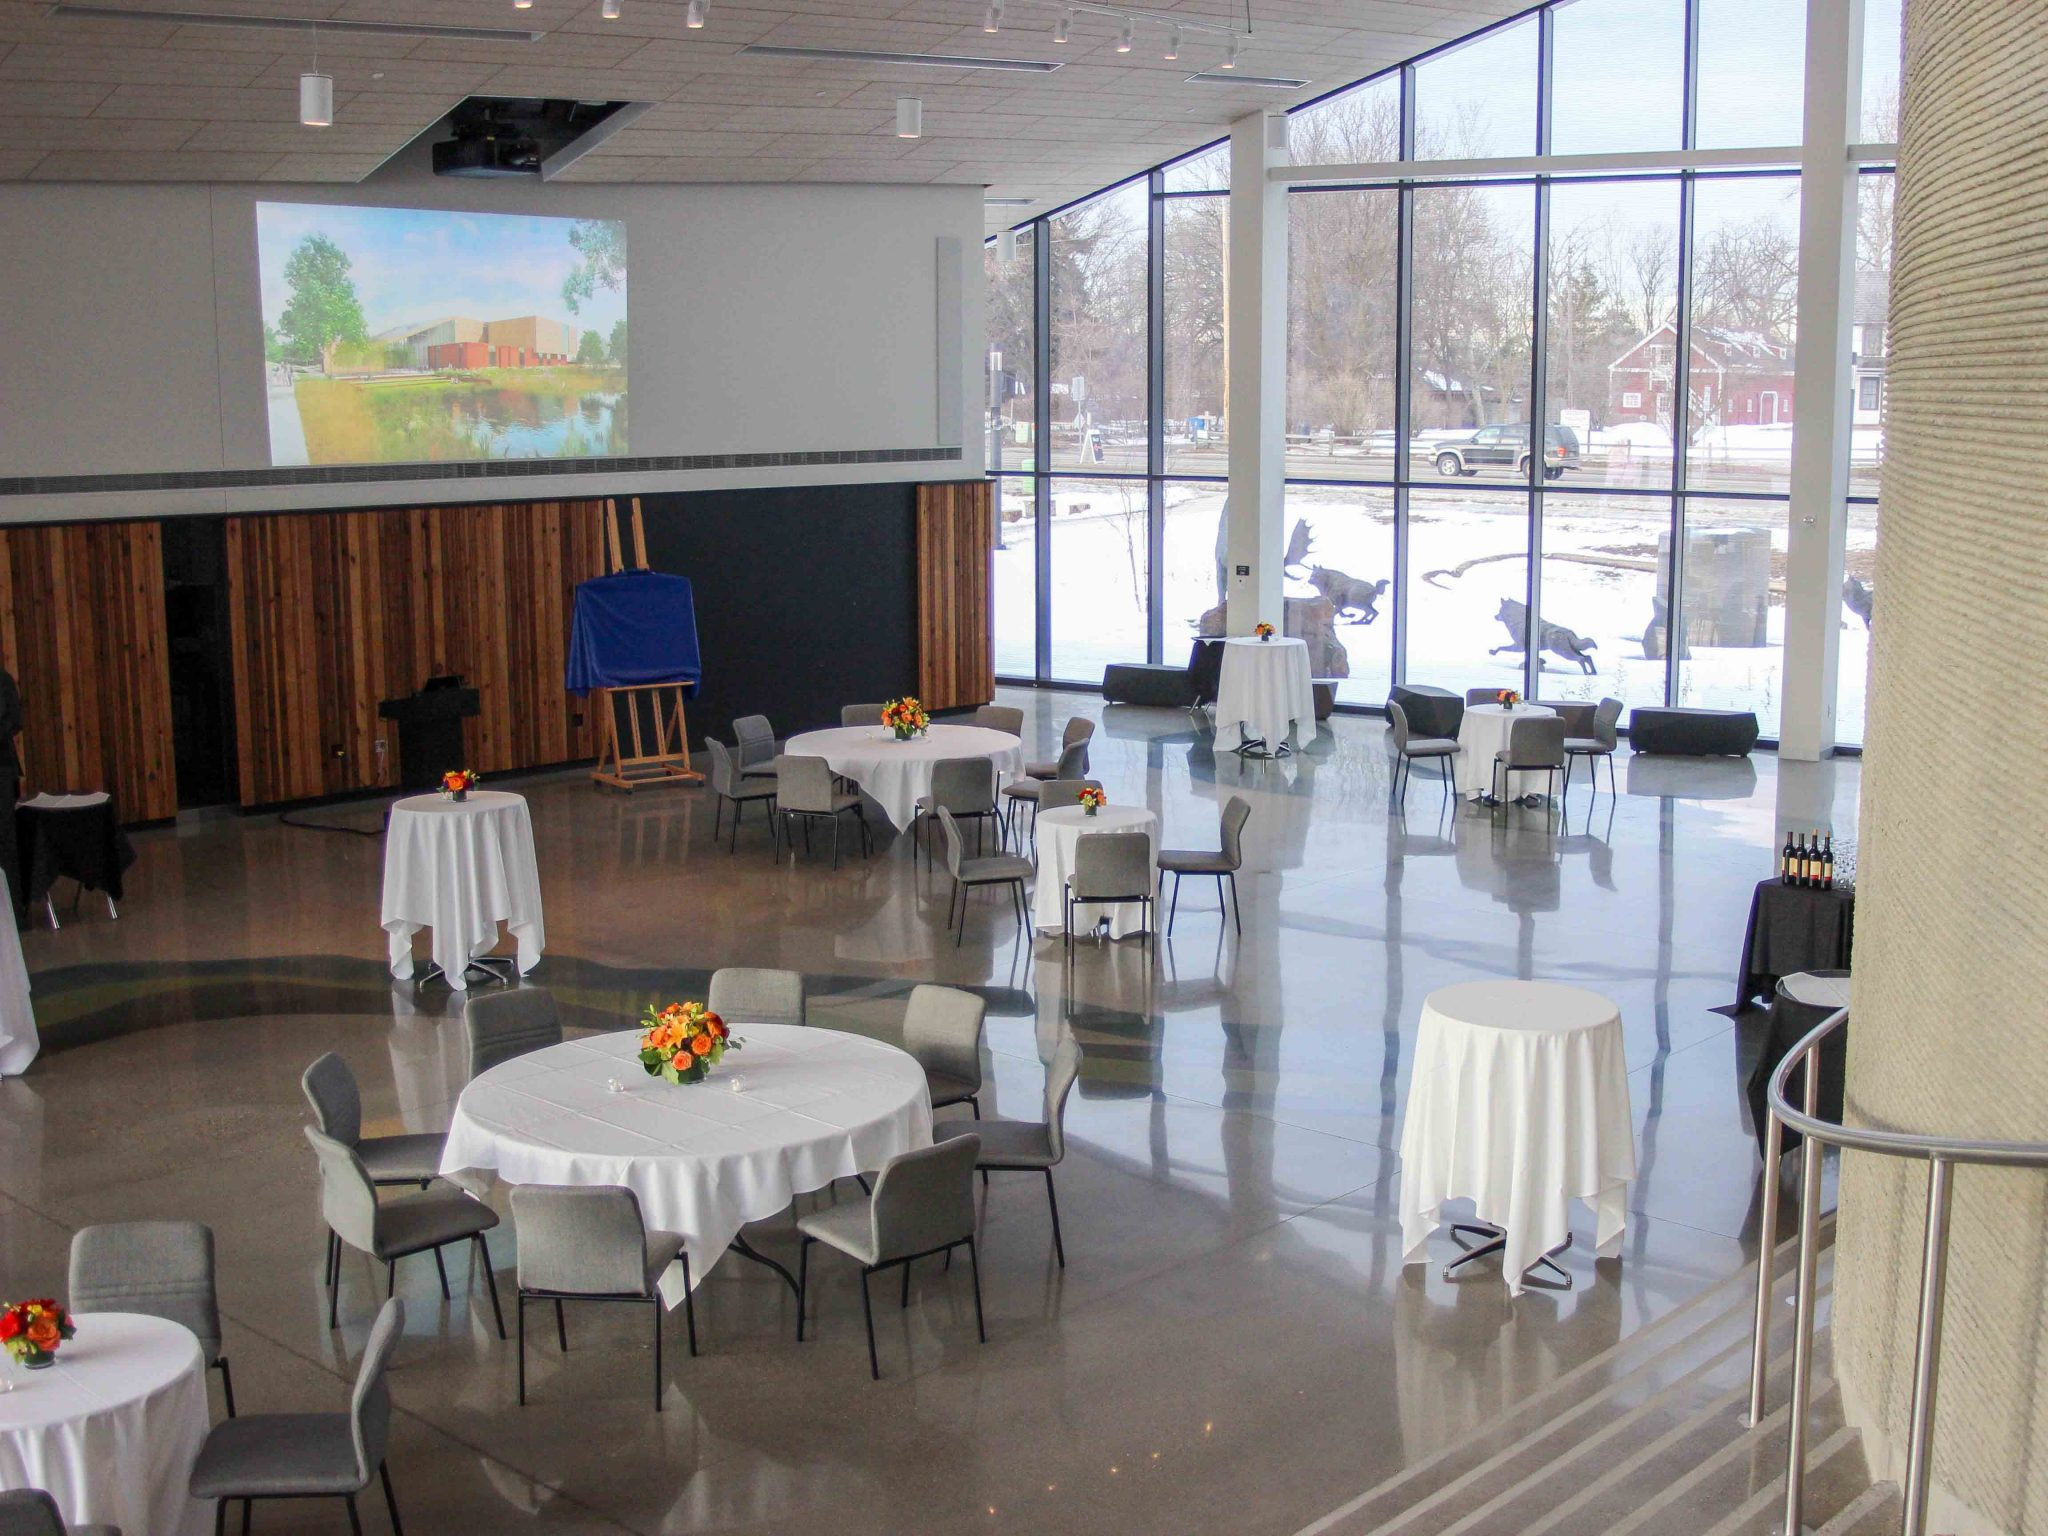 Tables set up for dinner in Horizon Hall, image projected on the wall above the hall